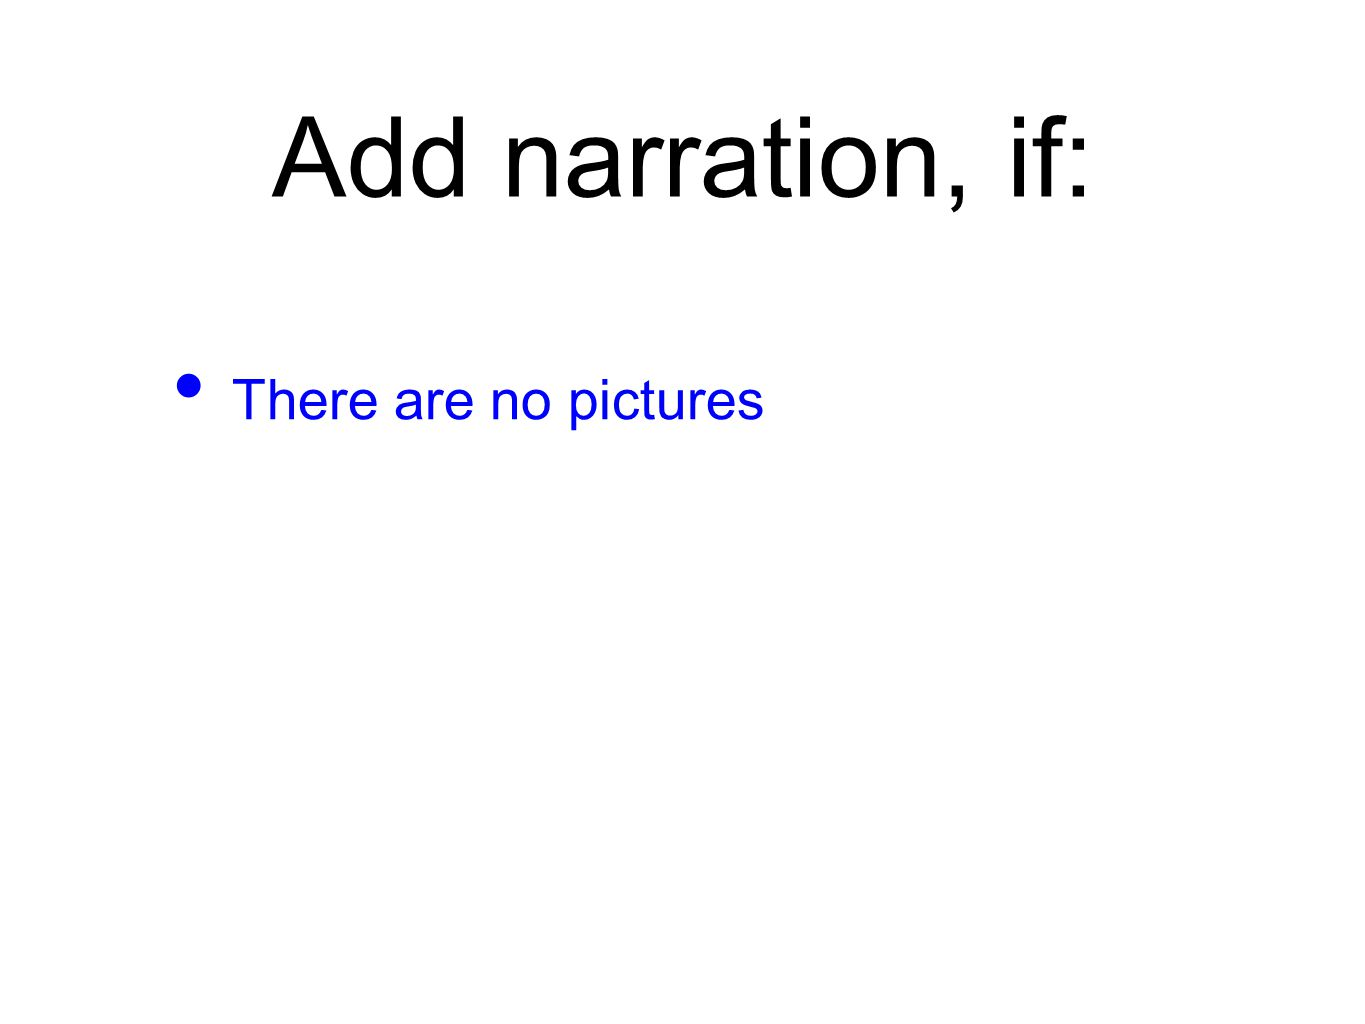 Add narration, if: There are no pictures